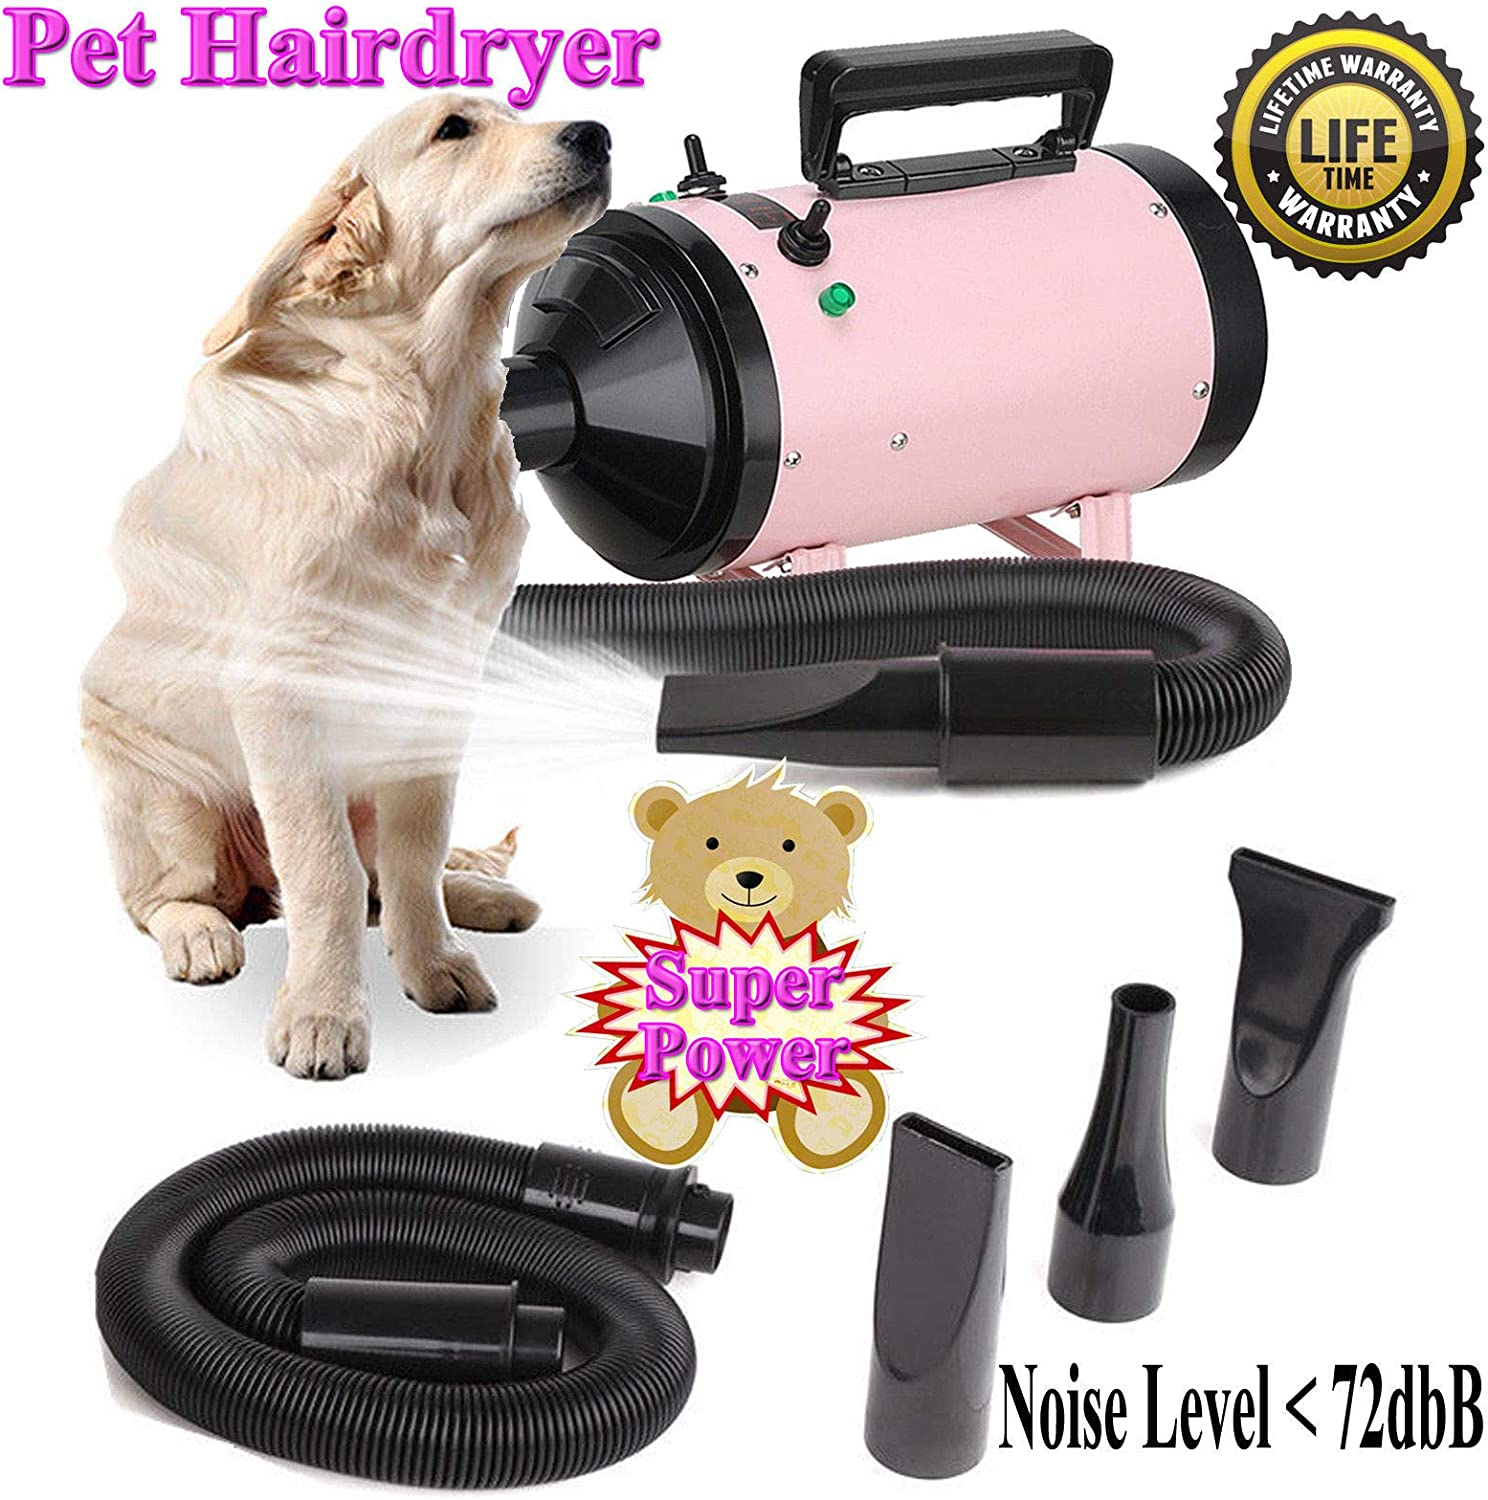 2800W Pet Dryer Hair Dog Cat Grooming Heater Blower Safety Dryer Blaster Low Noise 2.5M Flexible Hose with 3 Nozzles 2 Wind Speed All Season Use Pink